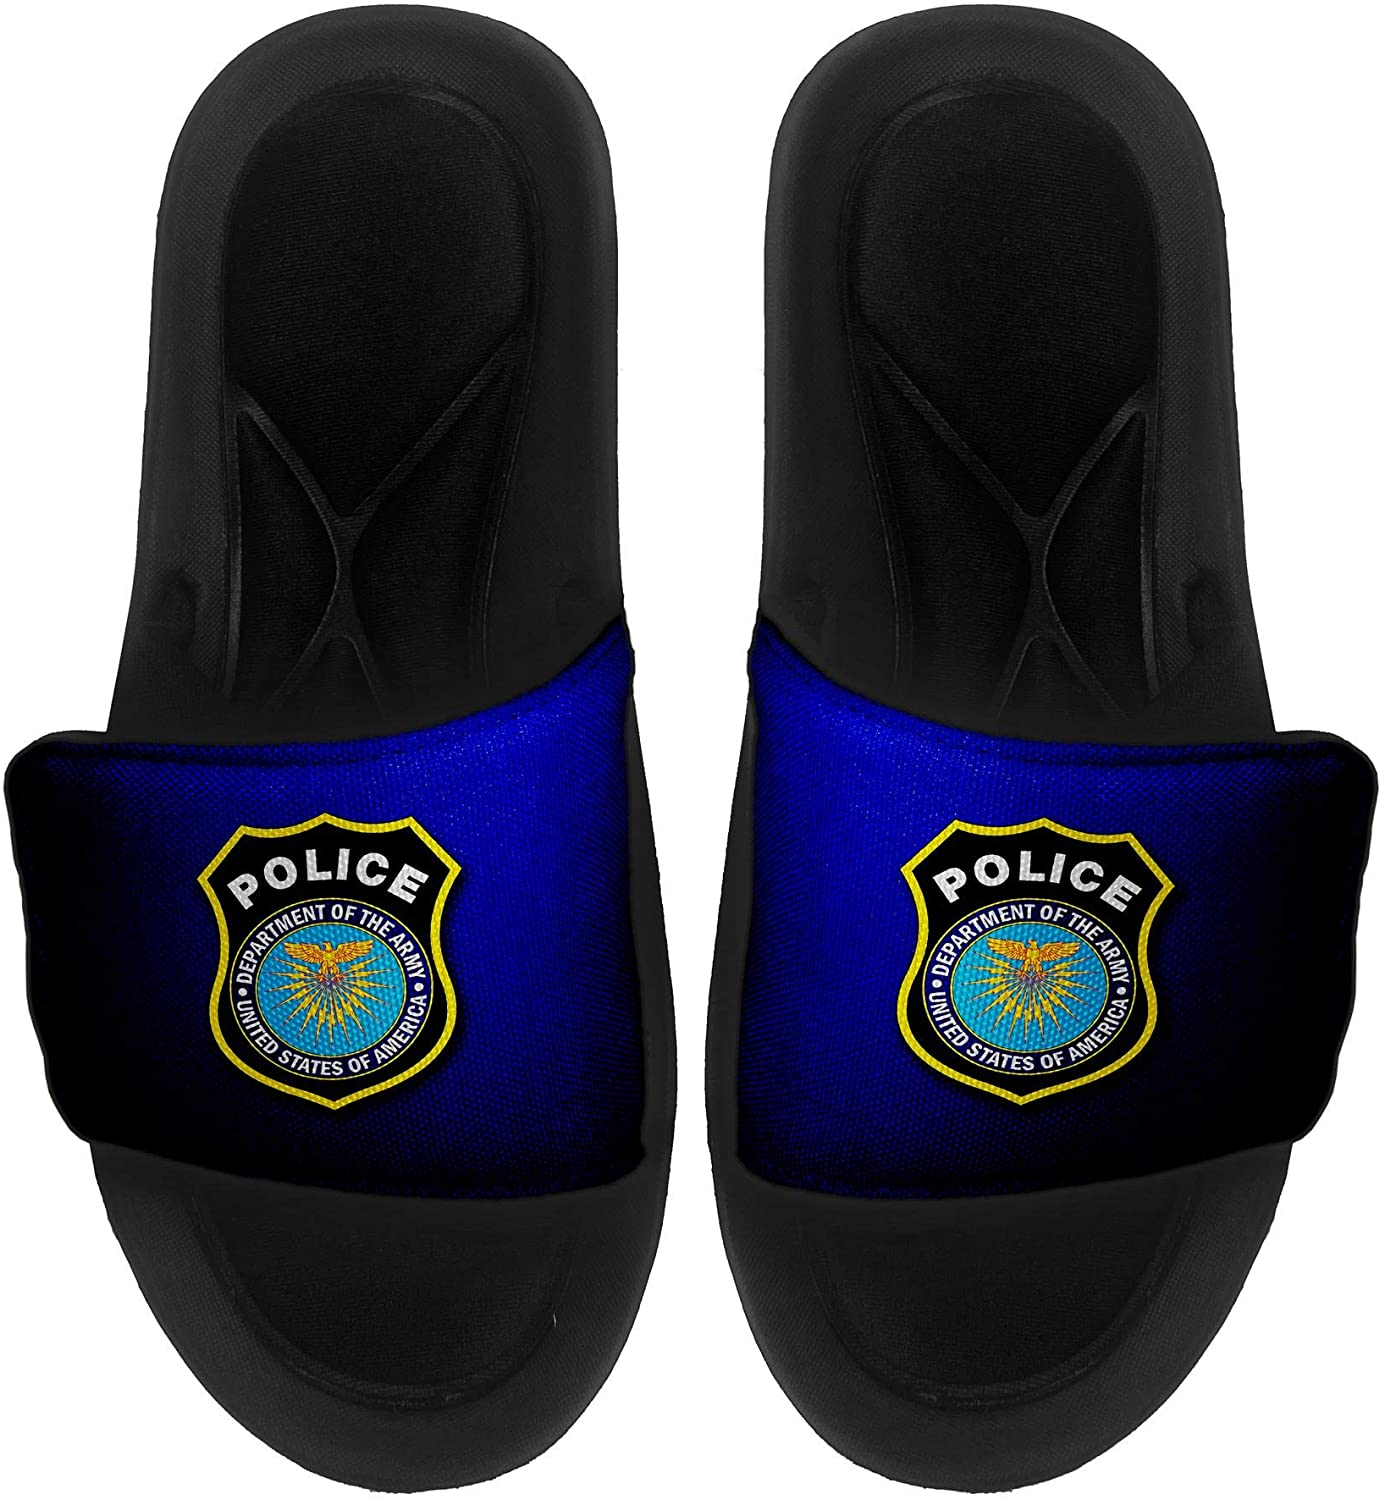 ExpressItBest Cushioned Slide-On Sandals/Slides for Men, Women and Youth - US Army Military Police Corps, Branch Plaque